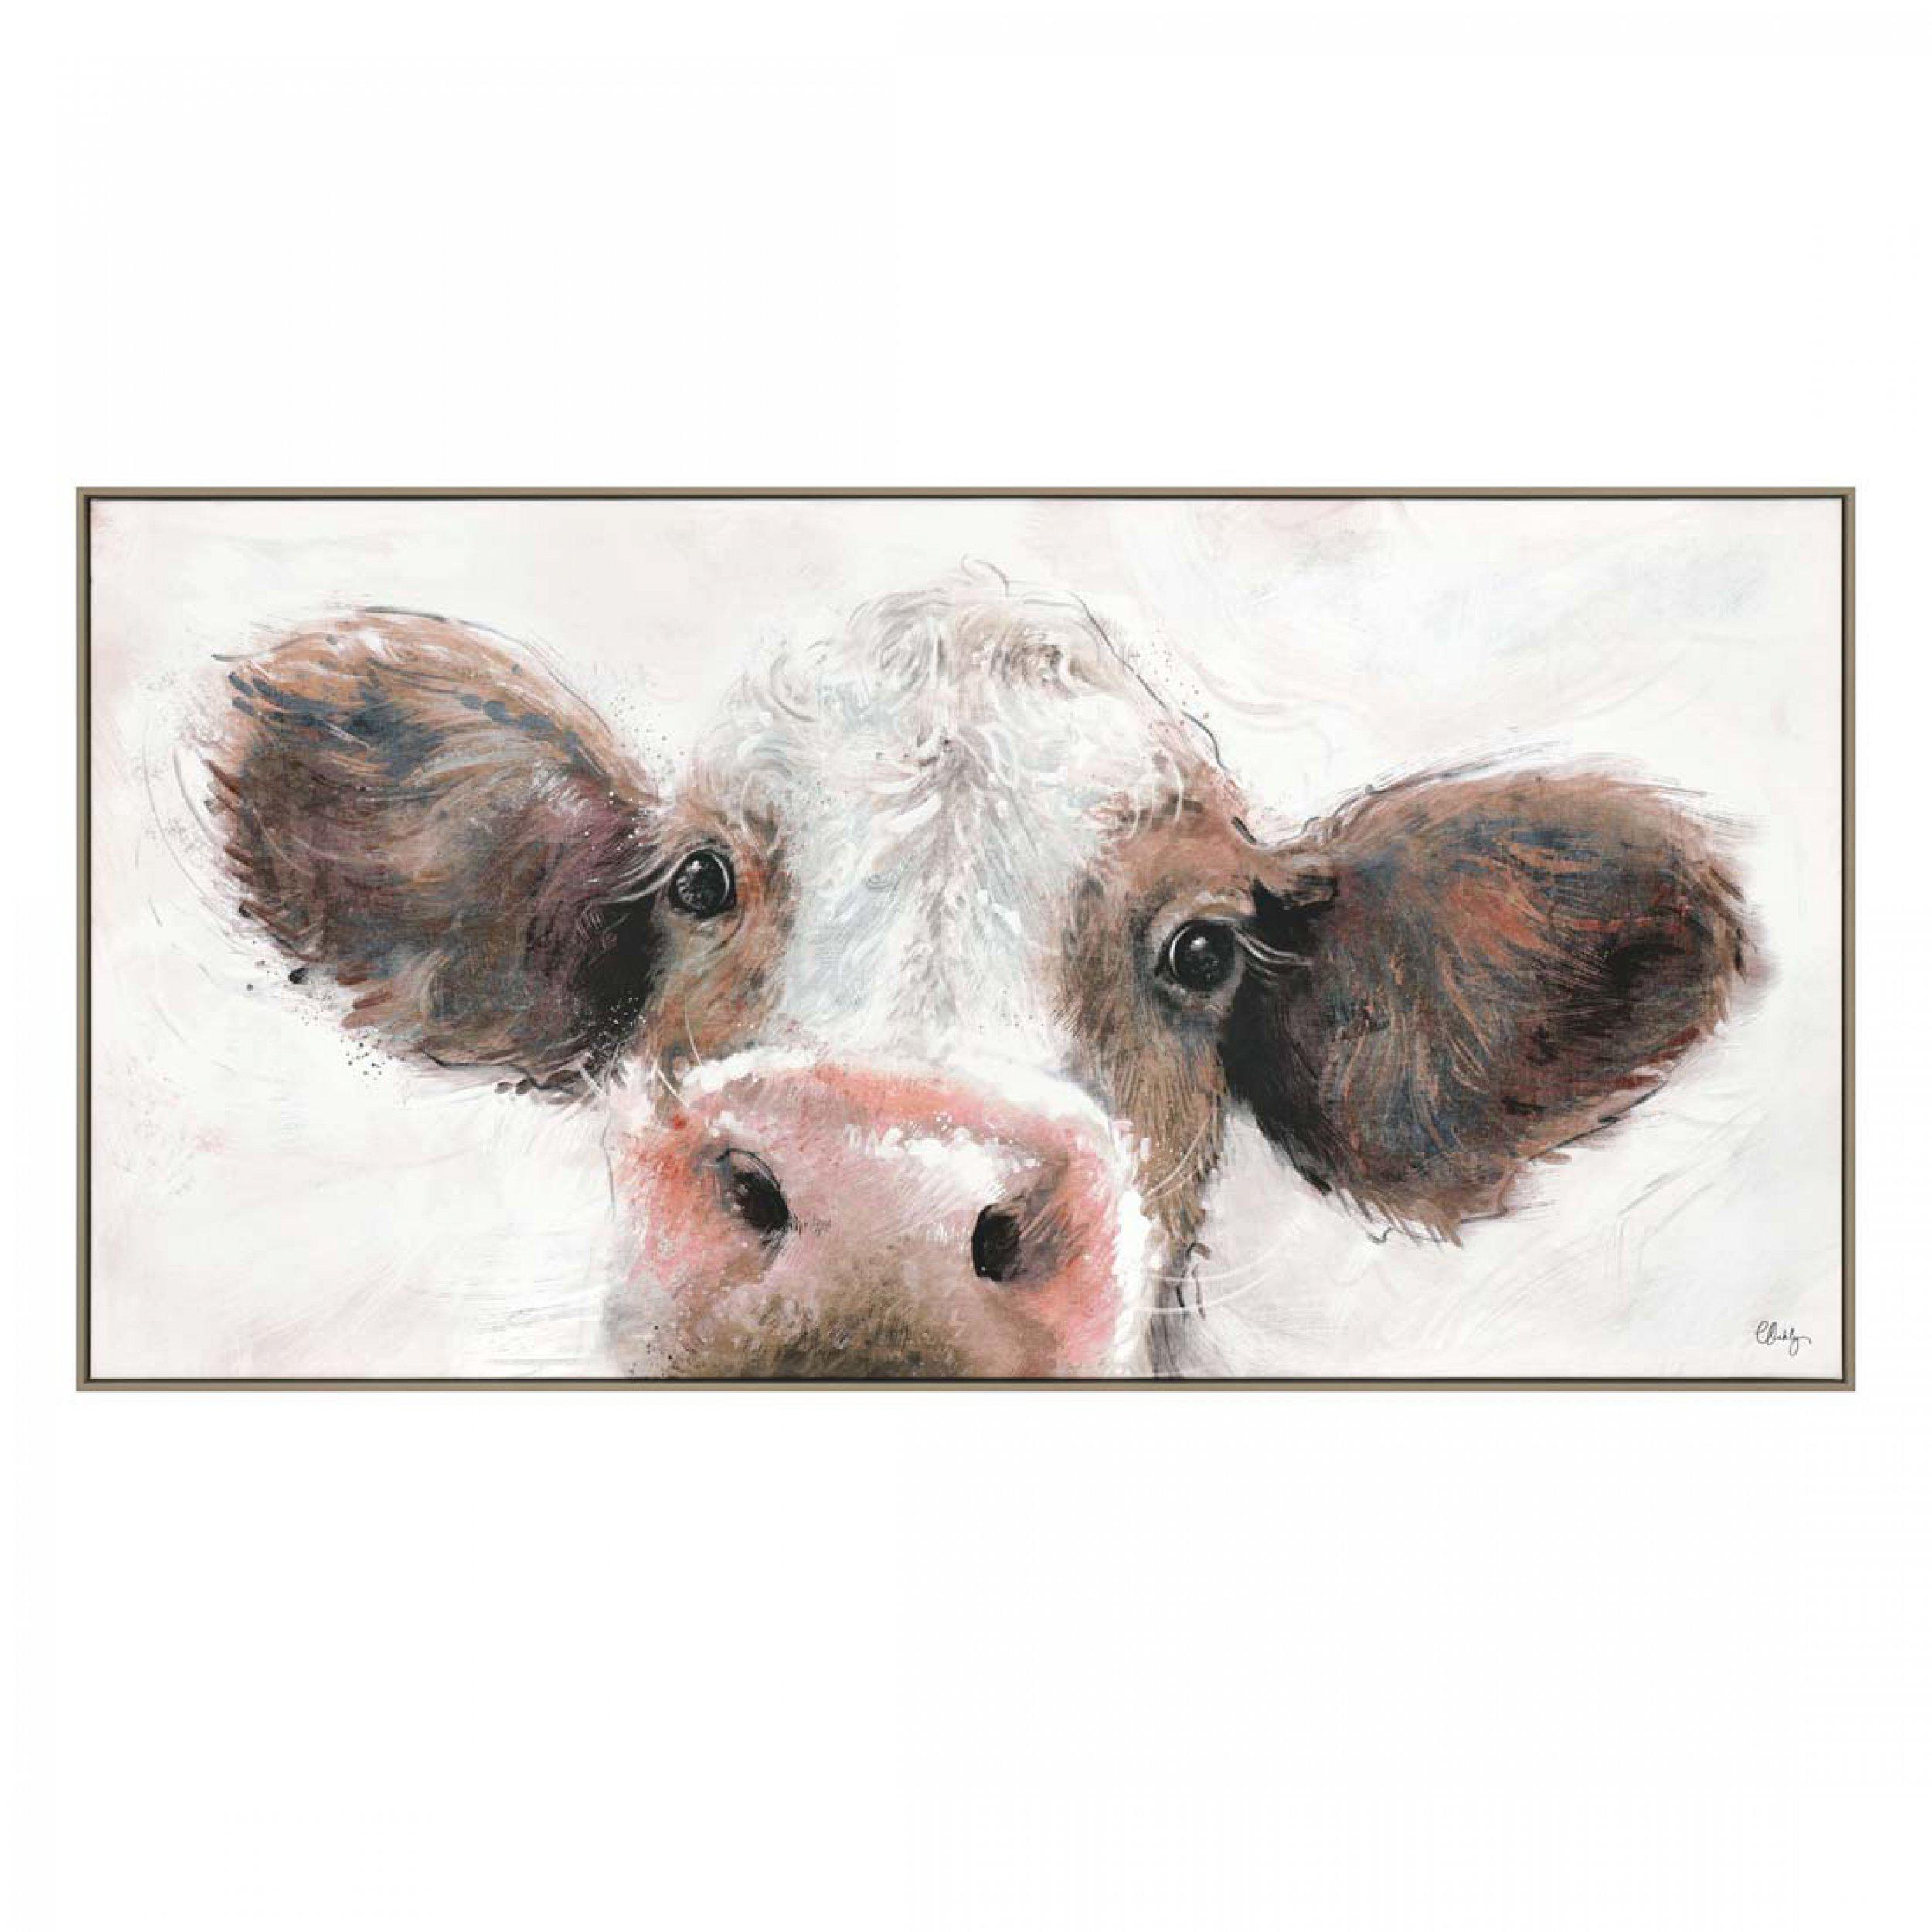 Art Gallery - Jethro - Cow Painting by Artist Charlotte Oakley - Framed Print For Sale - Surrounds West Byfleet Surrey